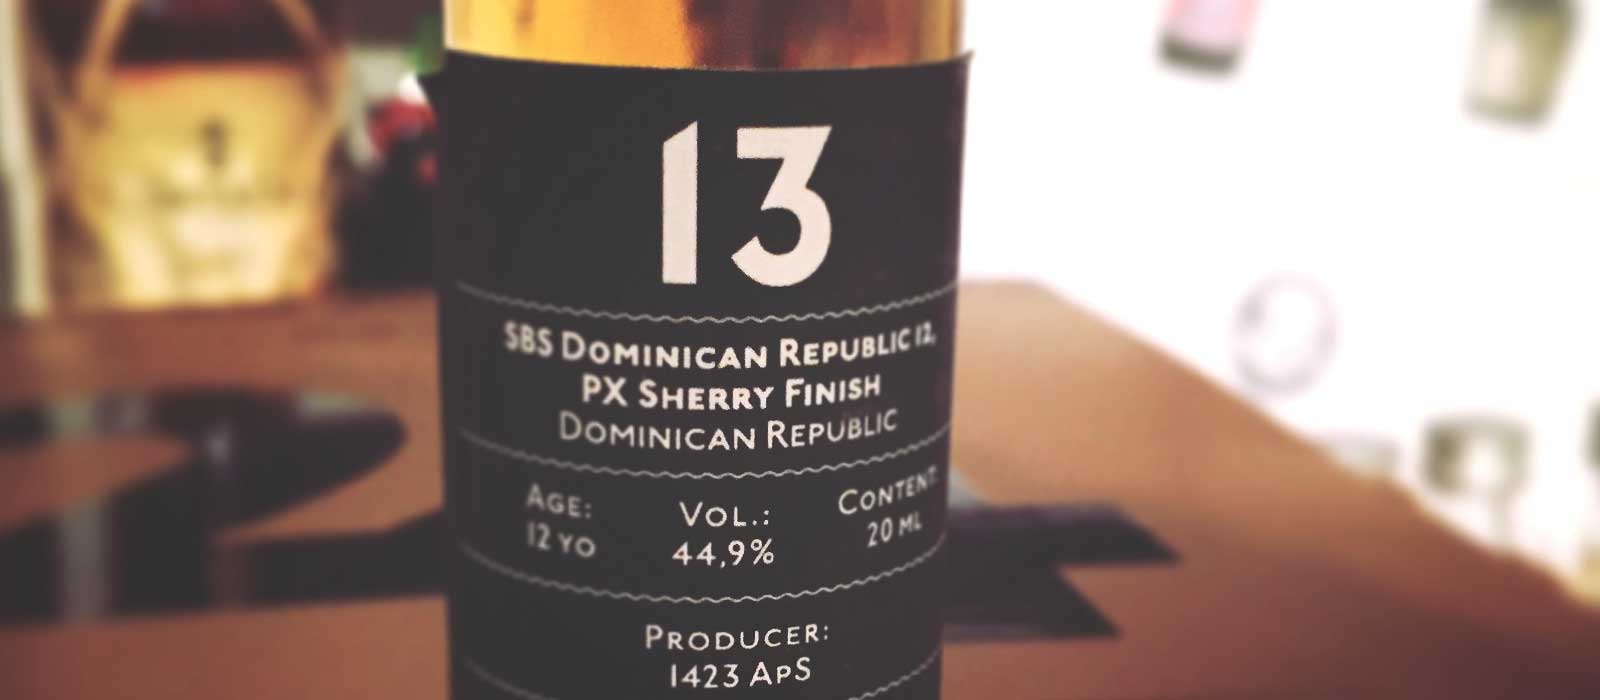 Månadens rom januari 2017: SBS Dominican Republic 12 Years PX Sherry Finish